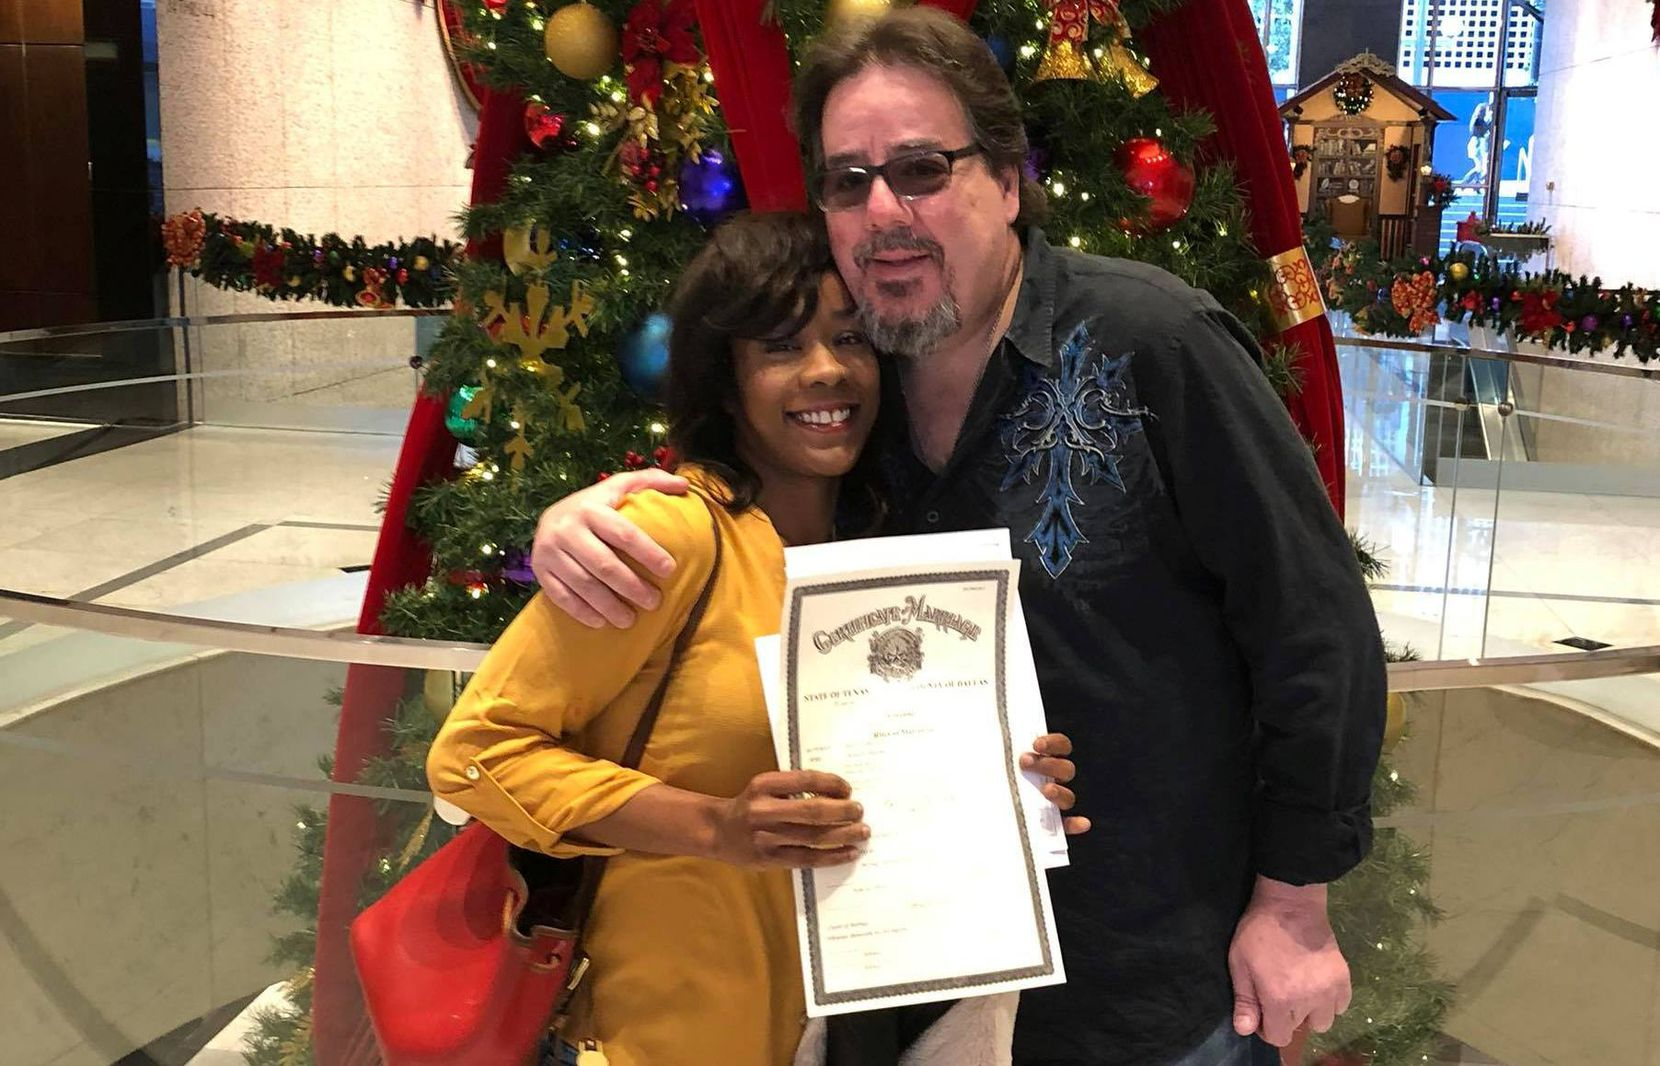 Steven Gentry posted this photo to Facebook of himself and Donnella Heads, holding a marriage certificate. Both were found dead of apparent gunshot wounds in an apartment in the Dallas Love Field area in what police are investigating as a murder-suicide.